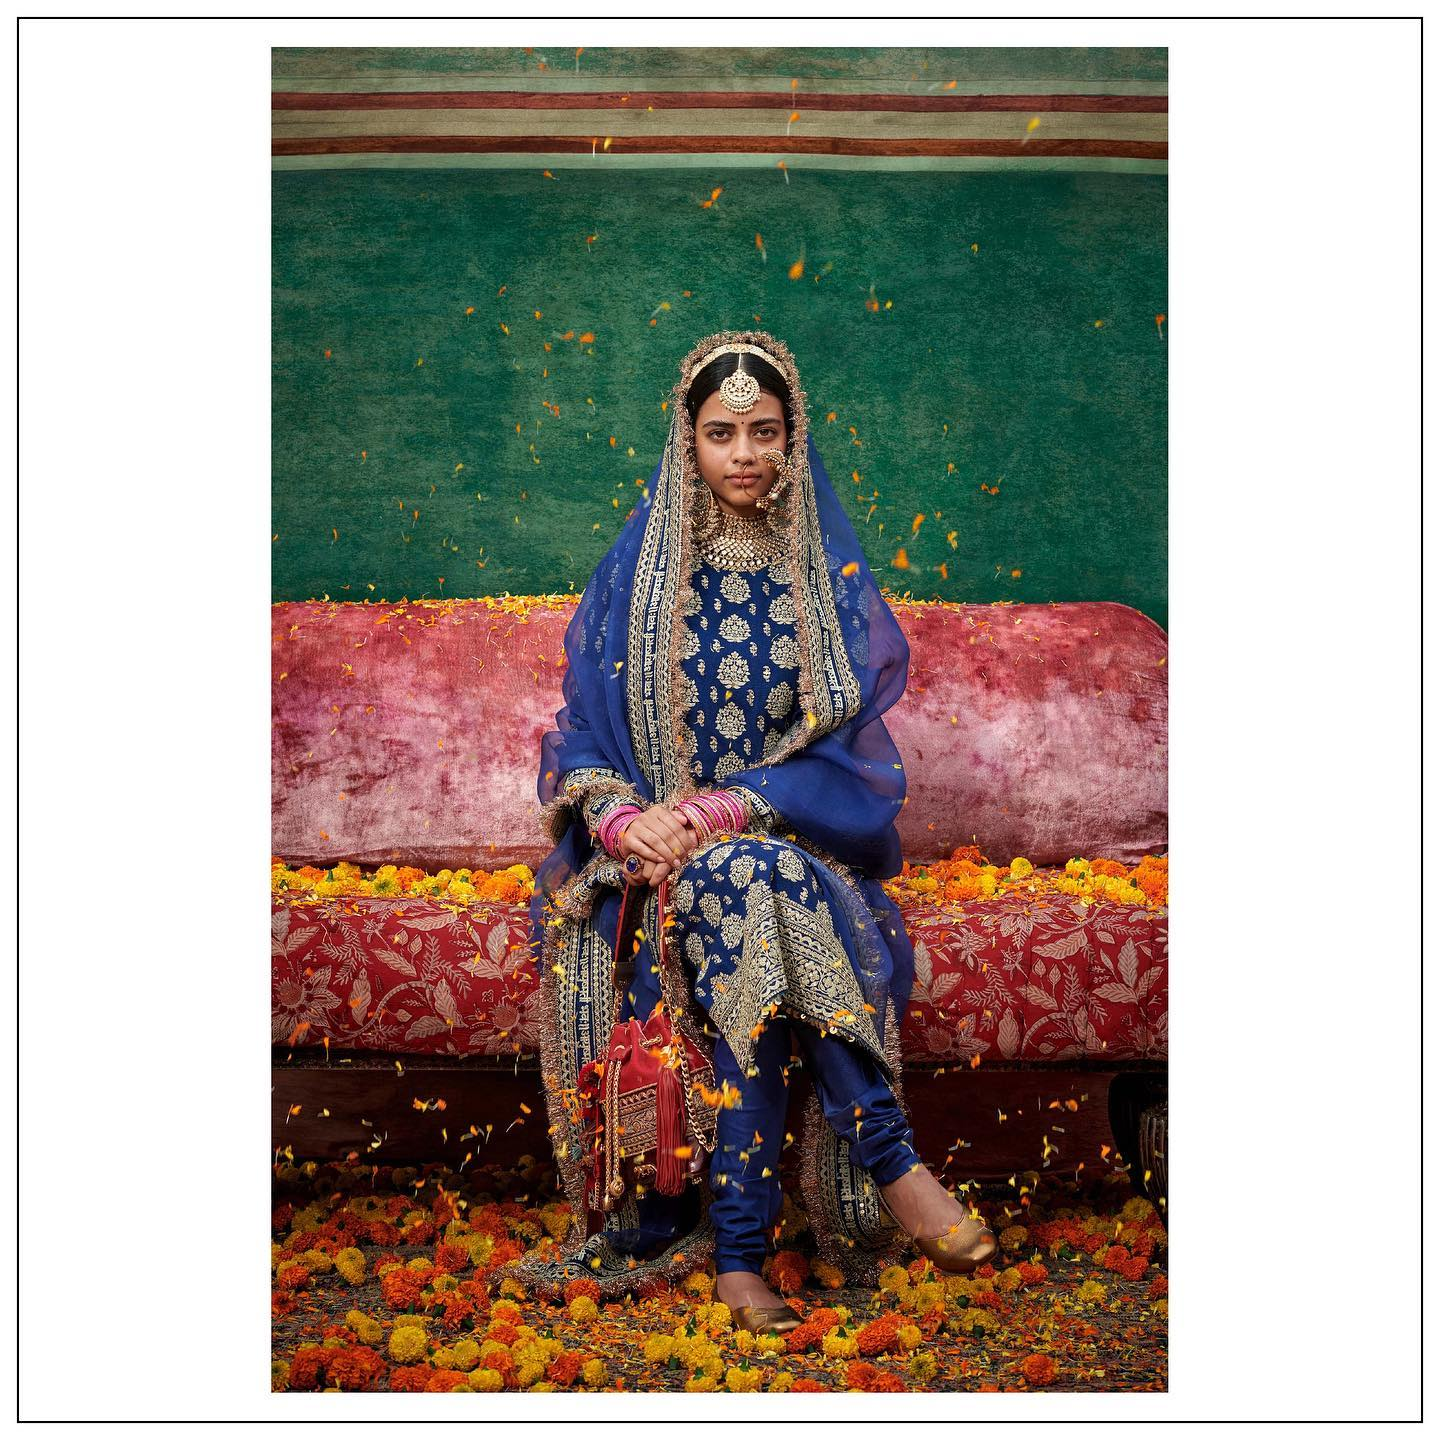 Stunning blue color floor length bridal kurti dress. The New Collection.  Womenswear and jewellery Sabyasachi jewelry.  For all product related queries please email  at customerservice@sabyasachi.com or contact retail stores directly. 2021-09-06